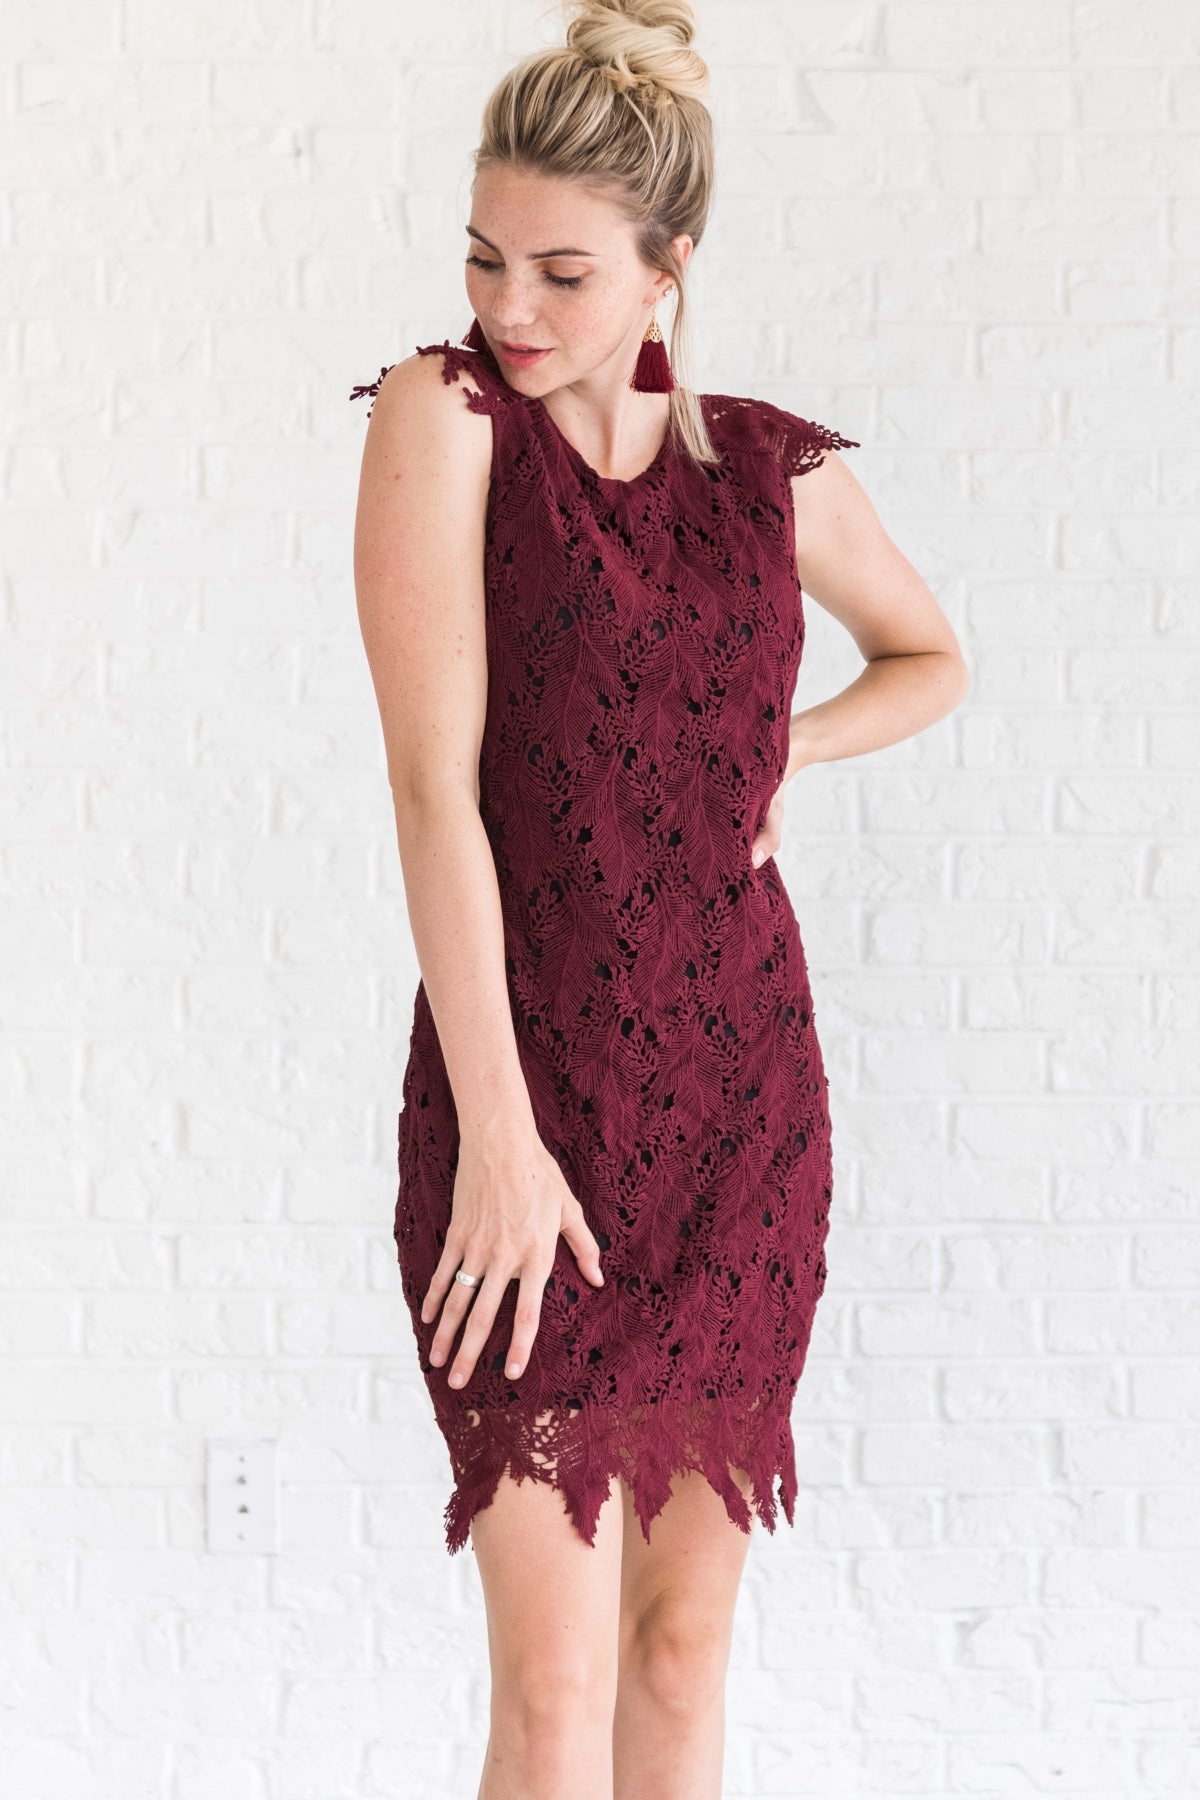 Burgundy Red Special Occasion Winter Dresses for Women